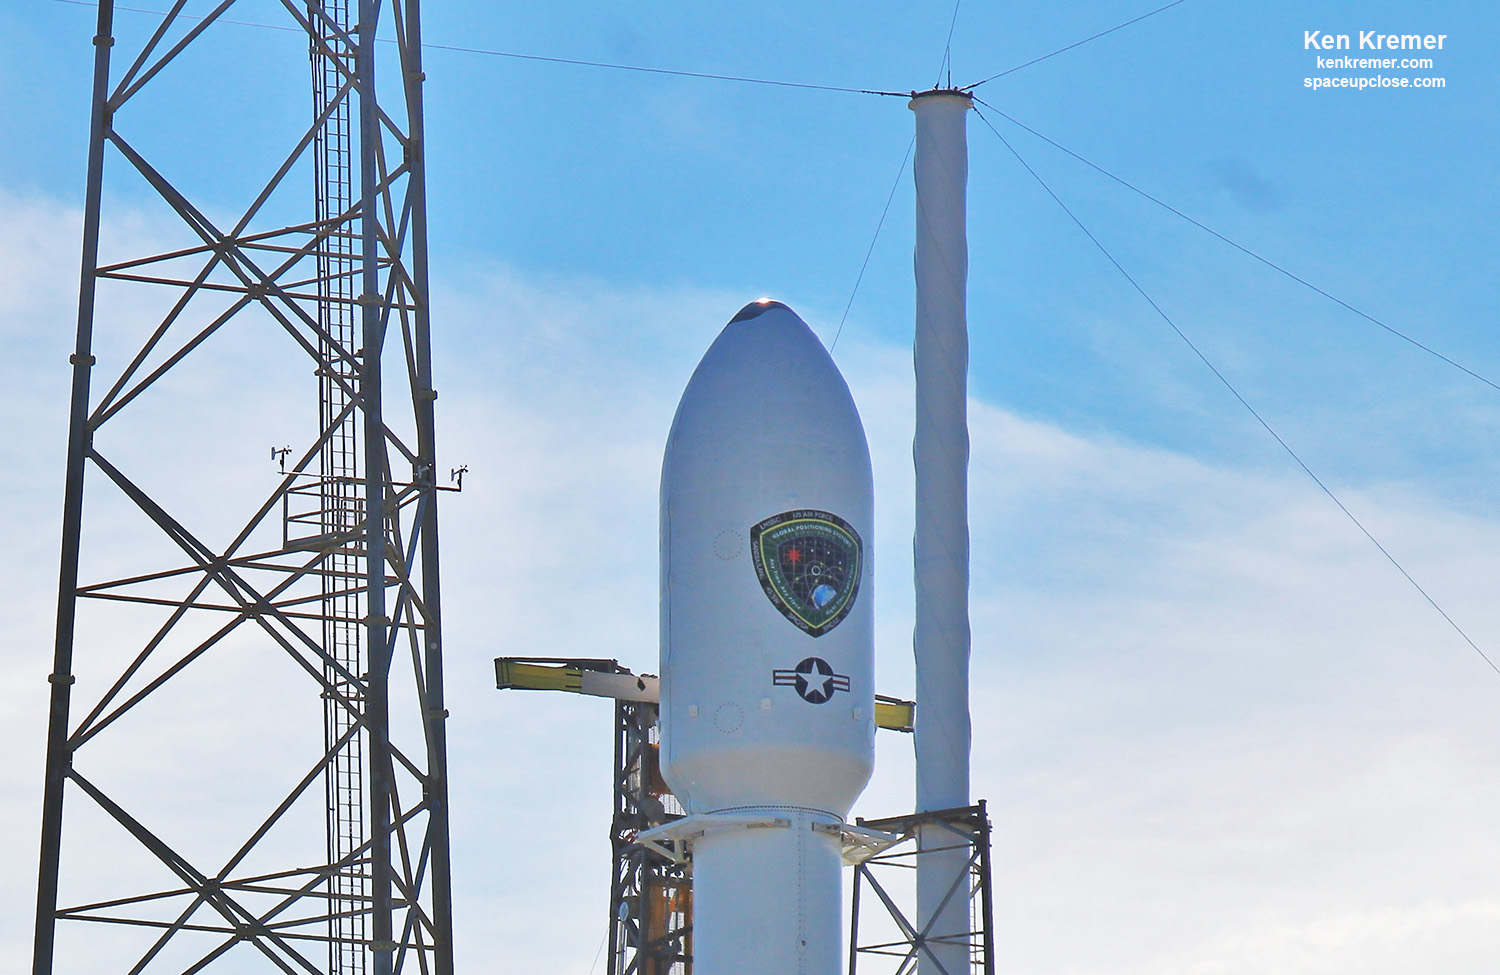 GPSIII-SV03 Navsat for US Space Force Encapsulated for Launch June 30